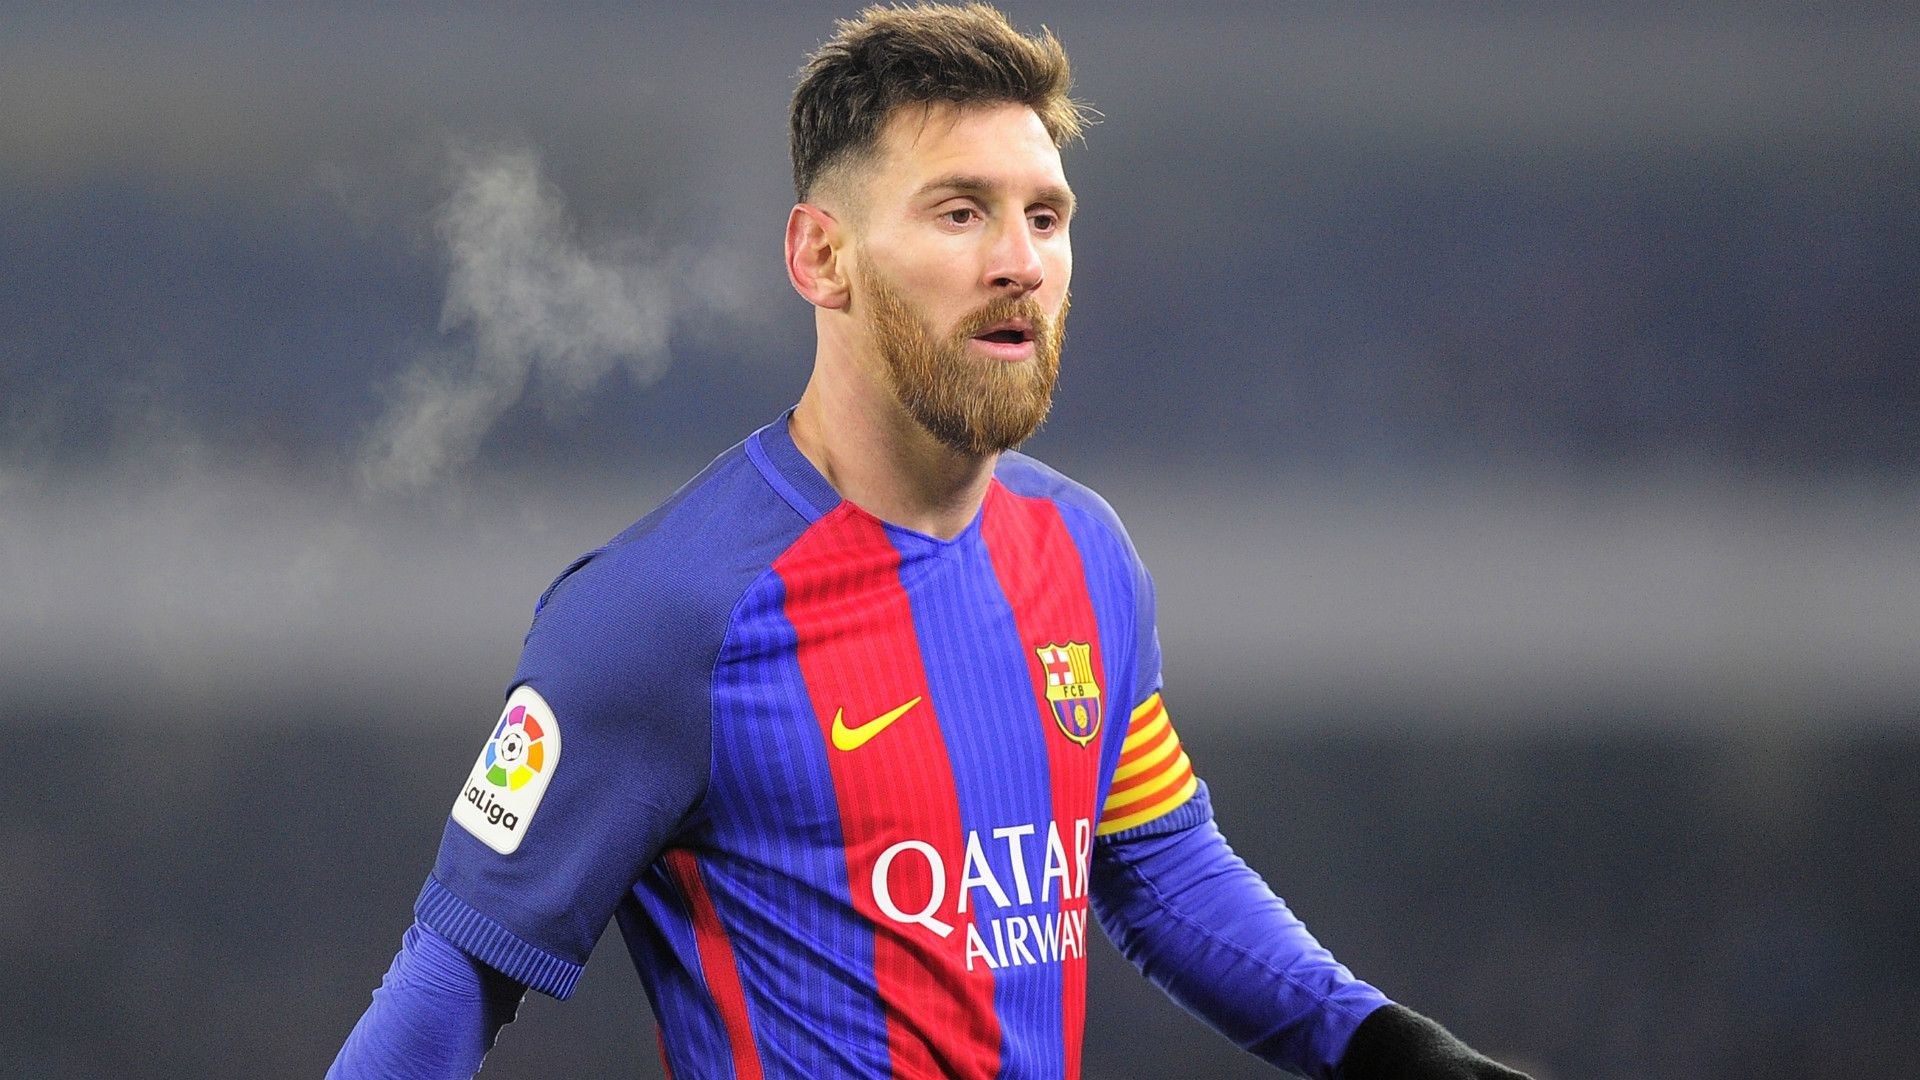 Messi Hd Wallpapers 79 Background Pictures